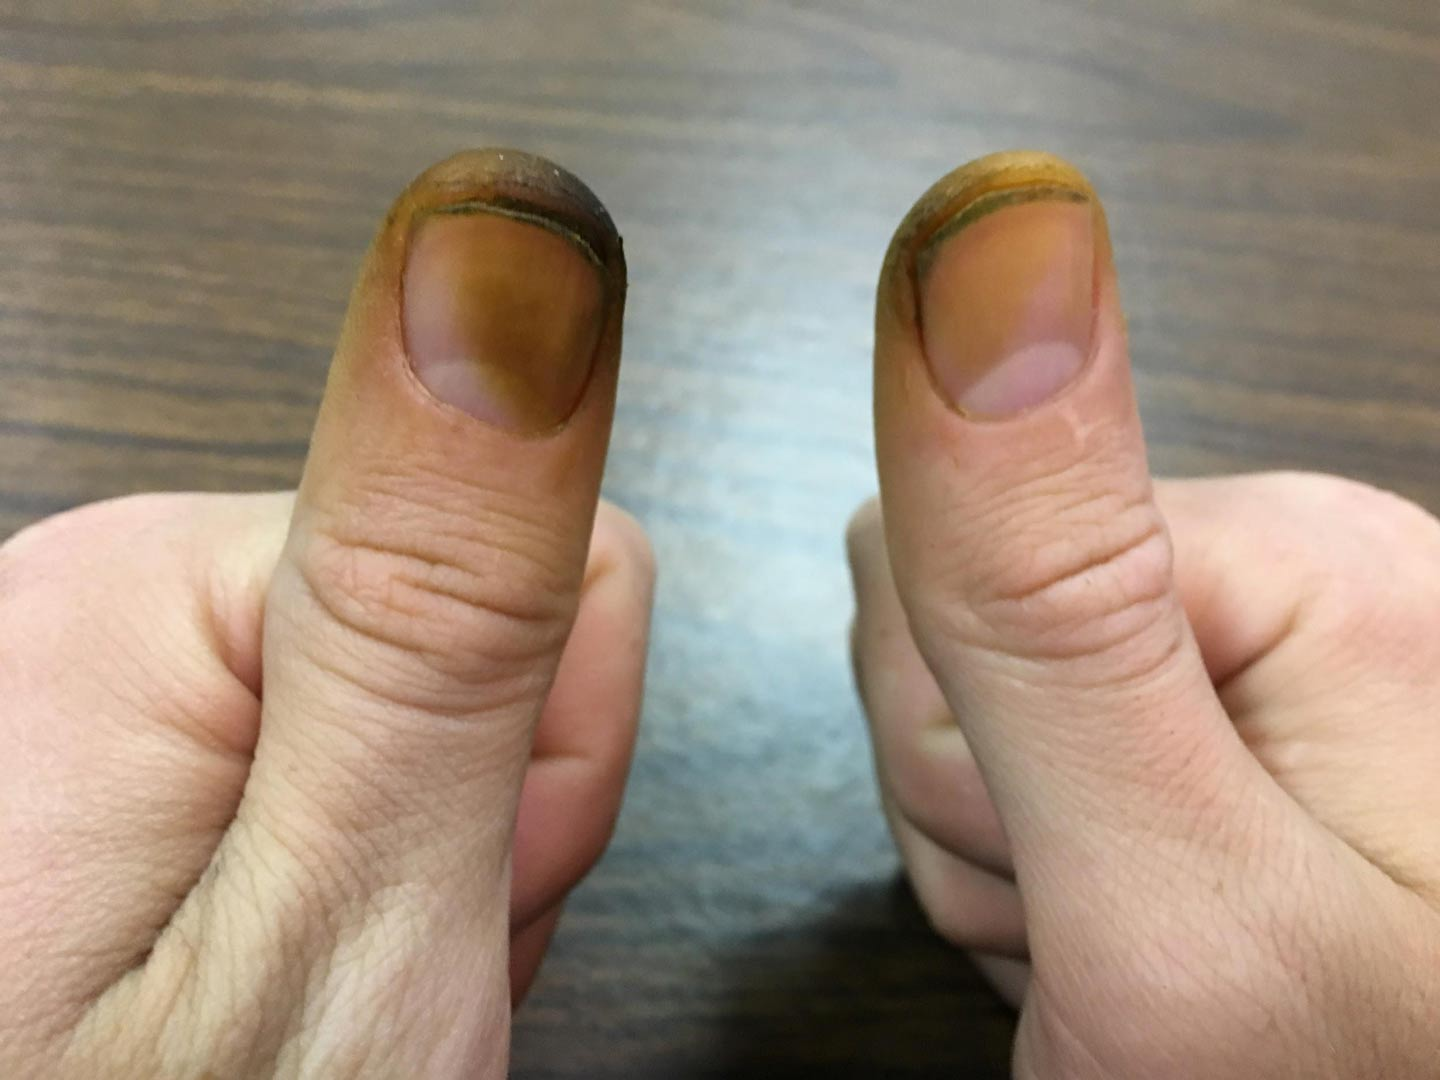 How To Remove Black Walnut Stains From Skin And Clothes